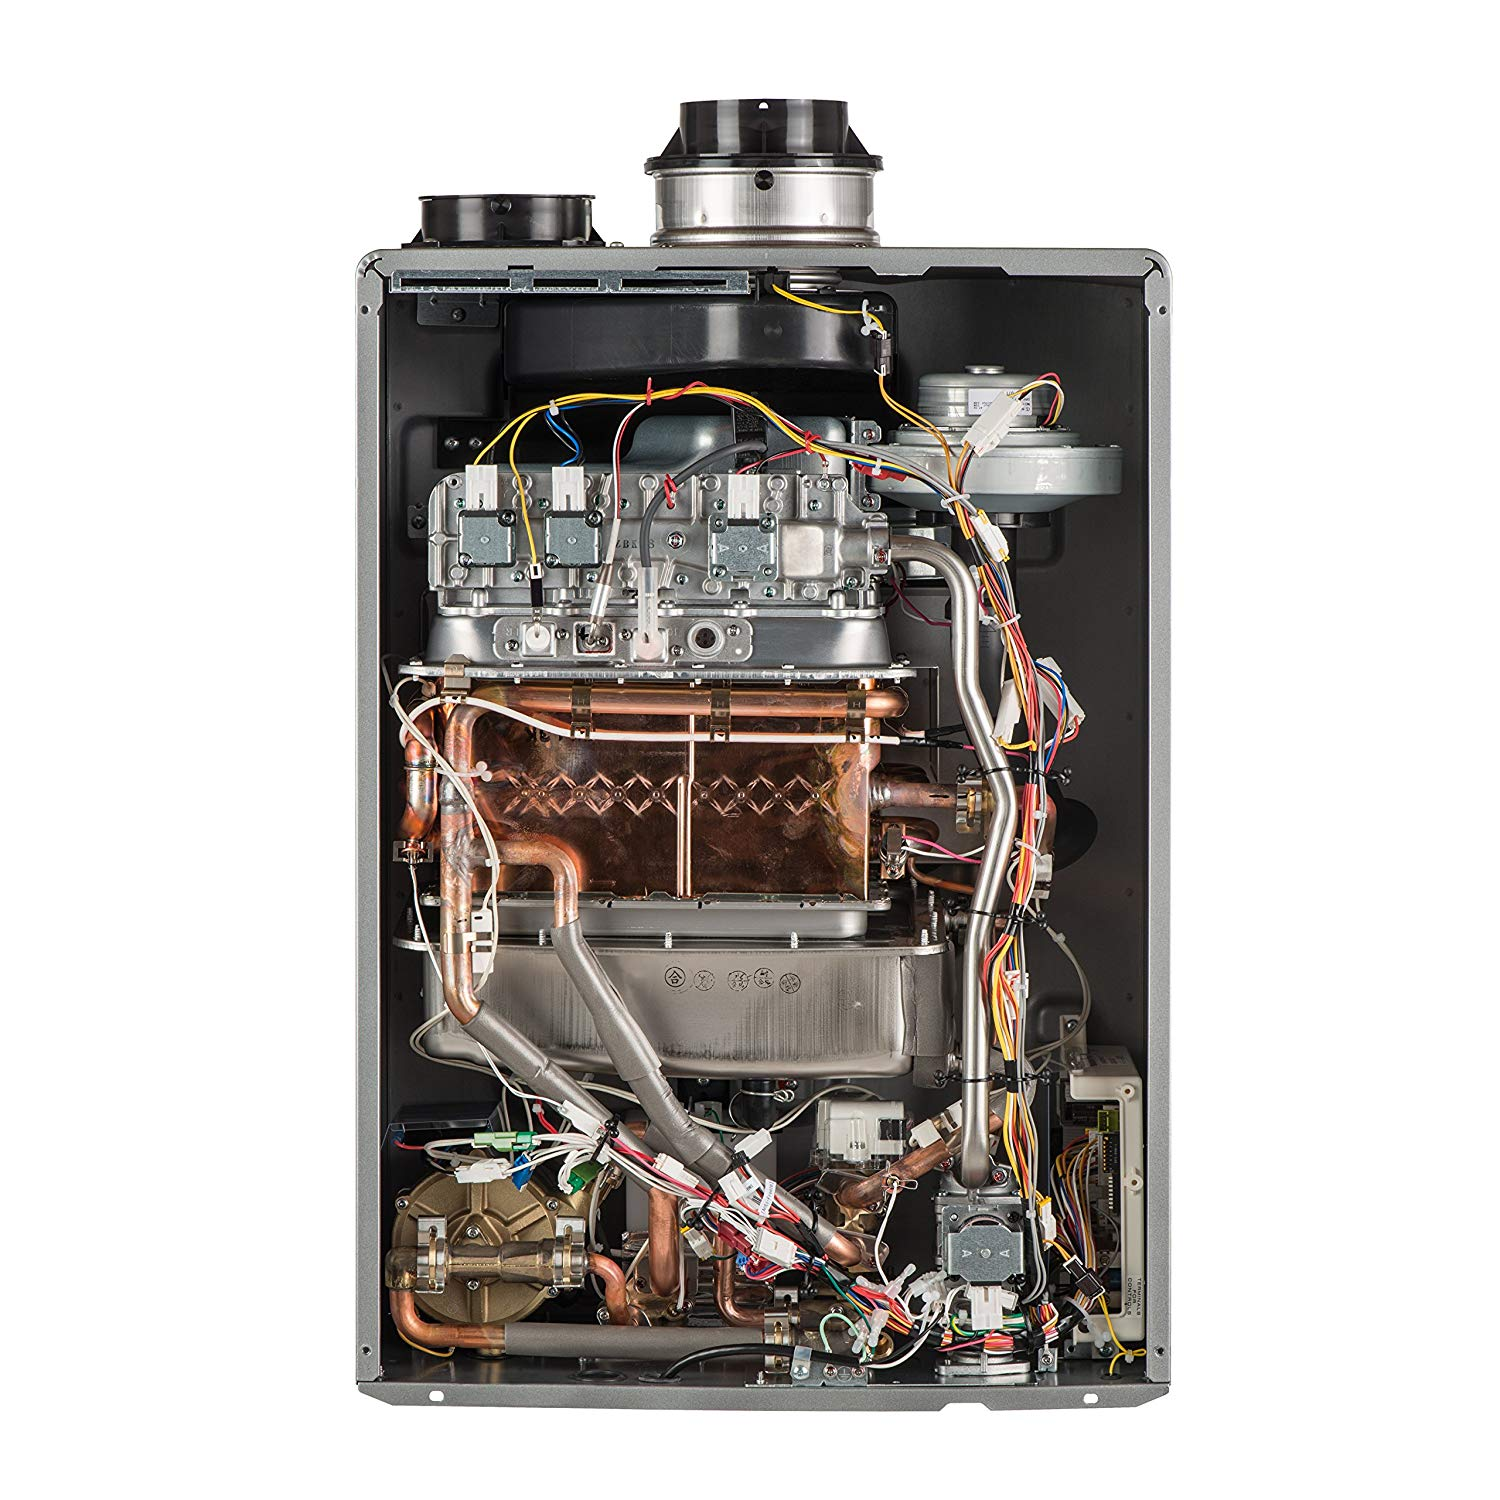 Rinnai RUR98iN 9.8 Max GPM Ultra Series Condensing Indoor Natural Gas Tankless Water Heater